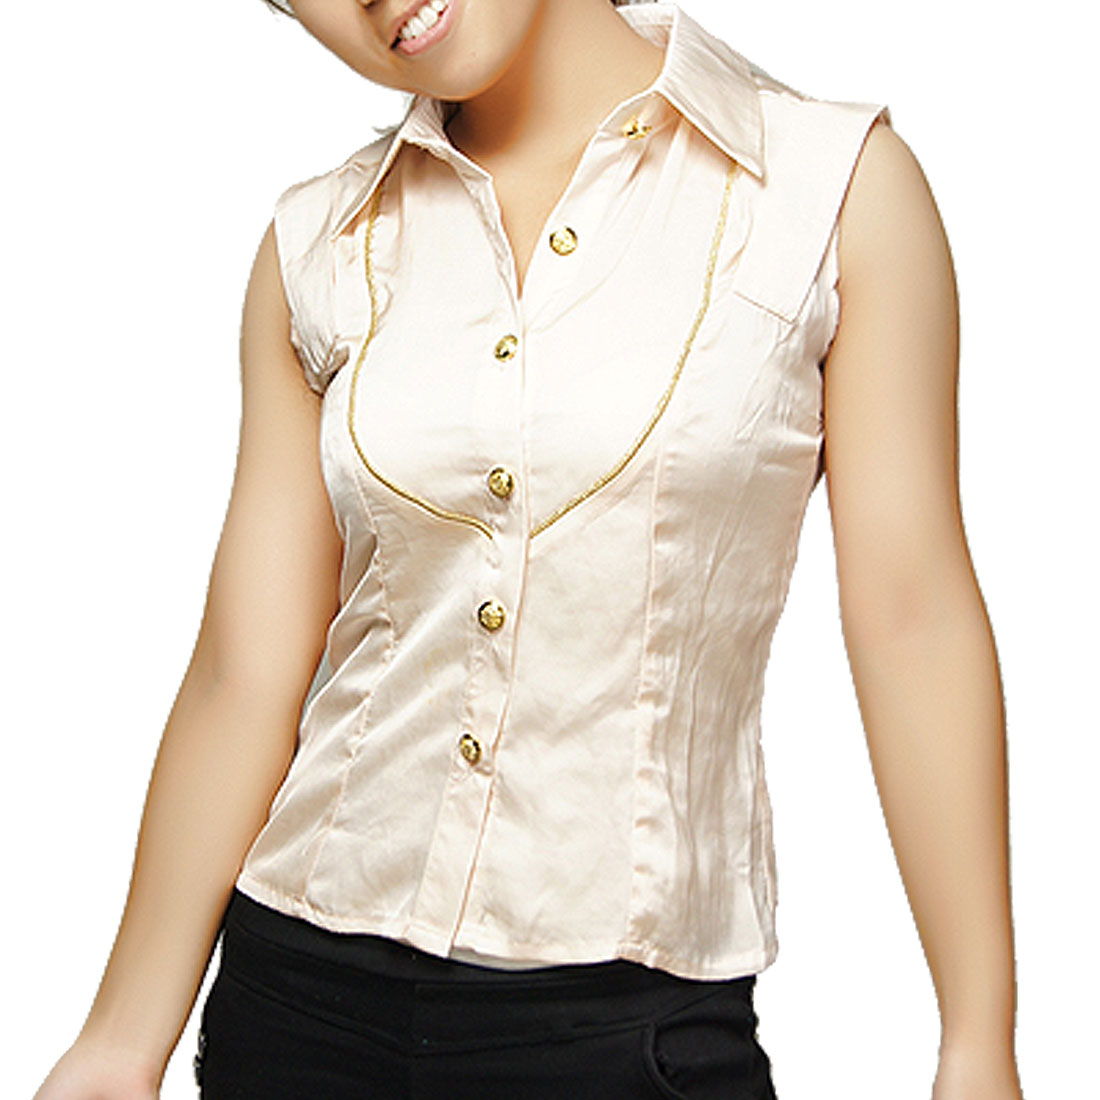 Lady Point Collar Button Closure Beige Sleeveless Blouse XS